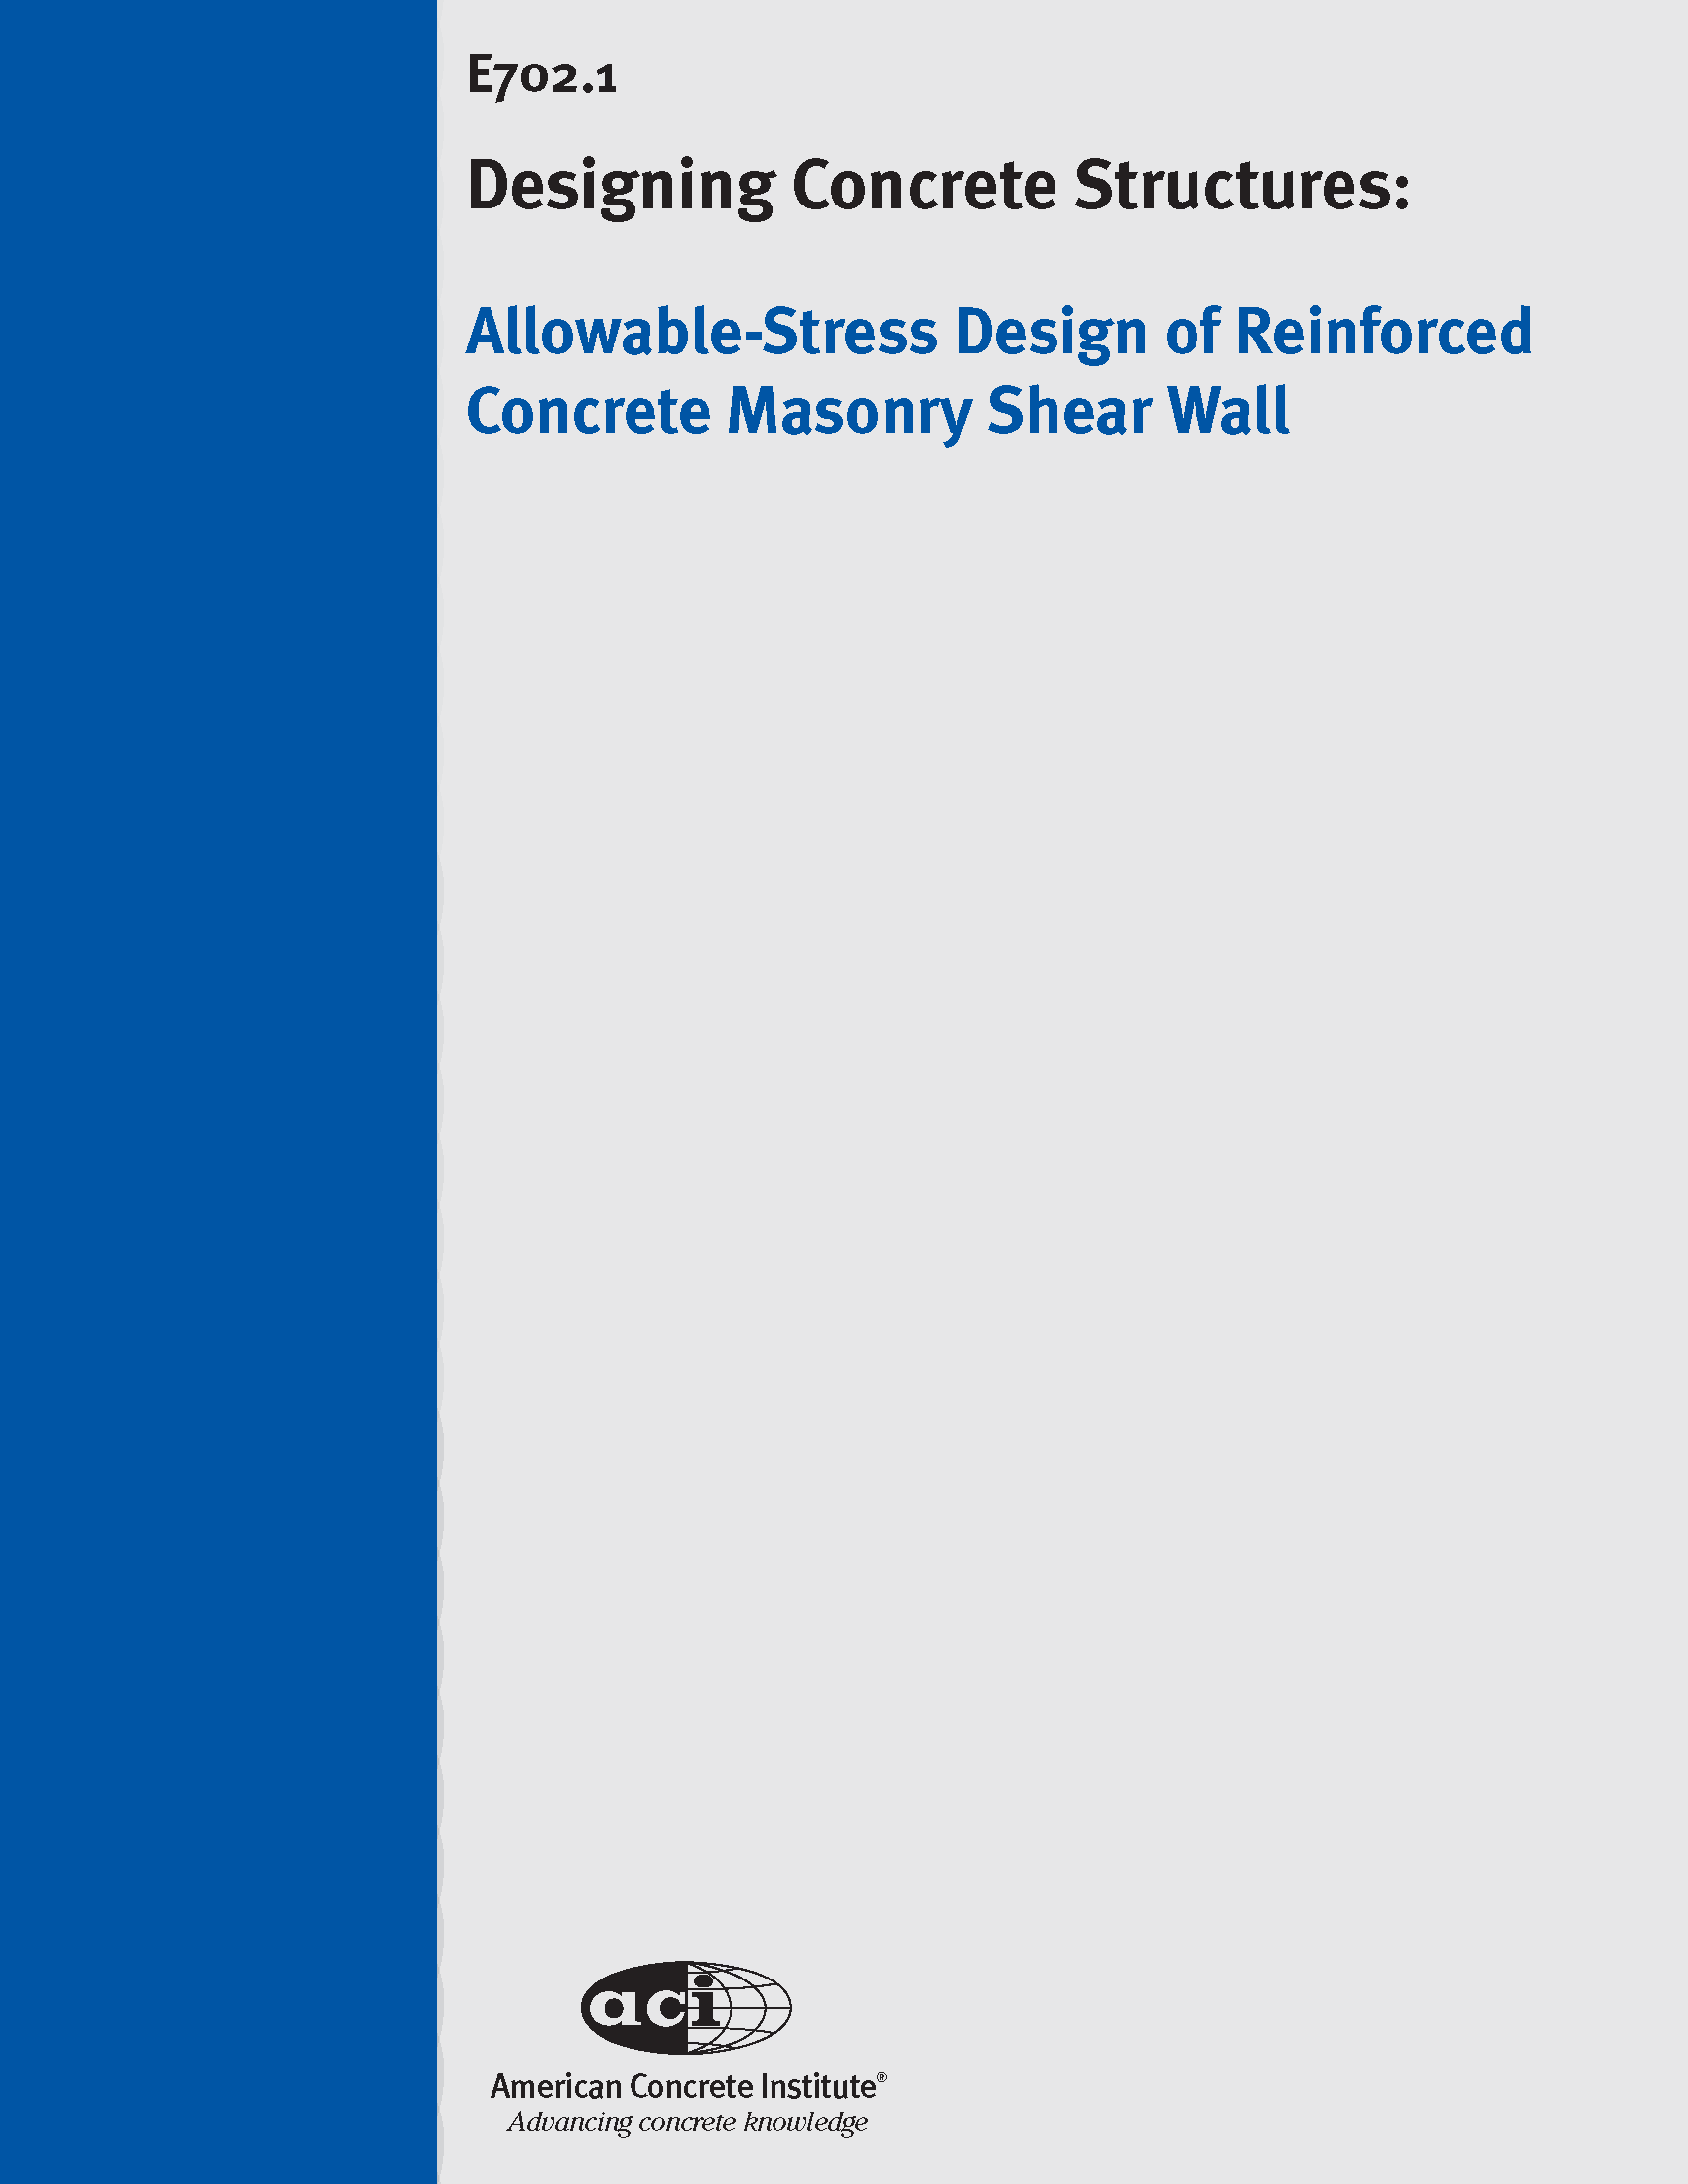 E702.1 06 Allowable Stress Design Of Reinforced Concrete Masonry Shear Wall